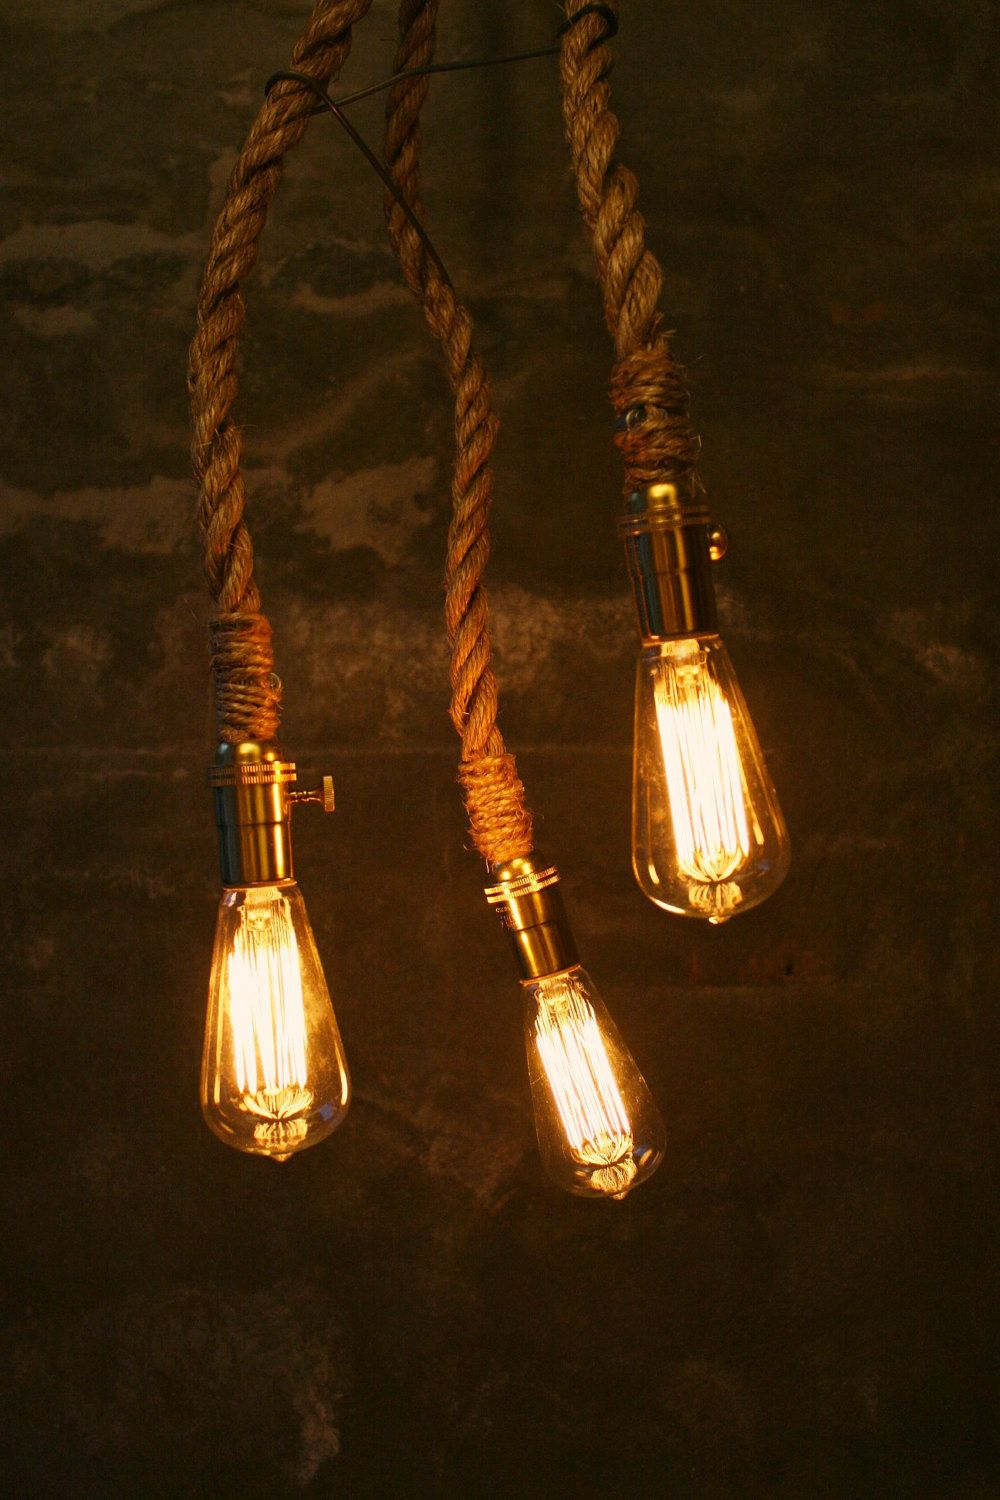 industrial lighting chandelier. Industrial Lighting Chandelier. Chandelier Light 3 Edison Bulb Hanging Lamp Gifts For Men E